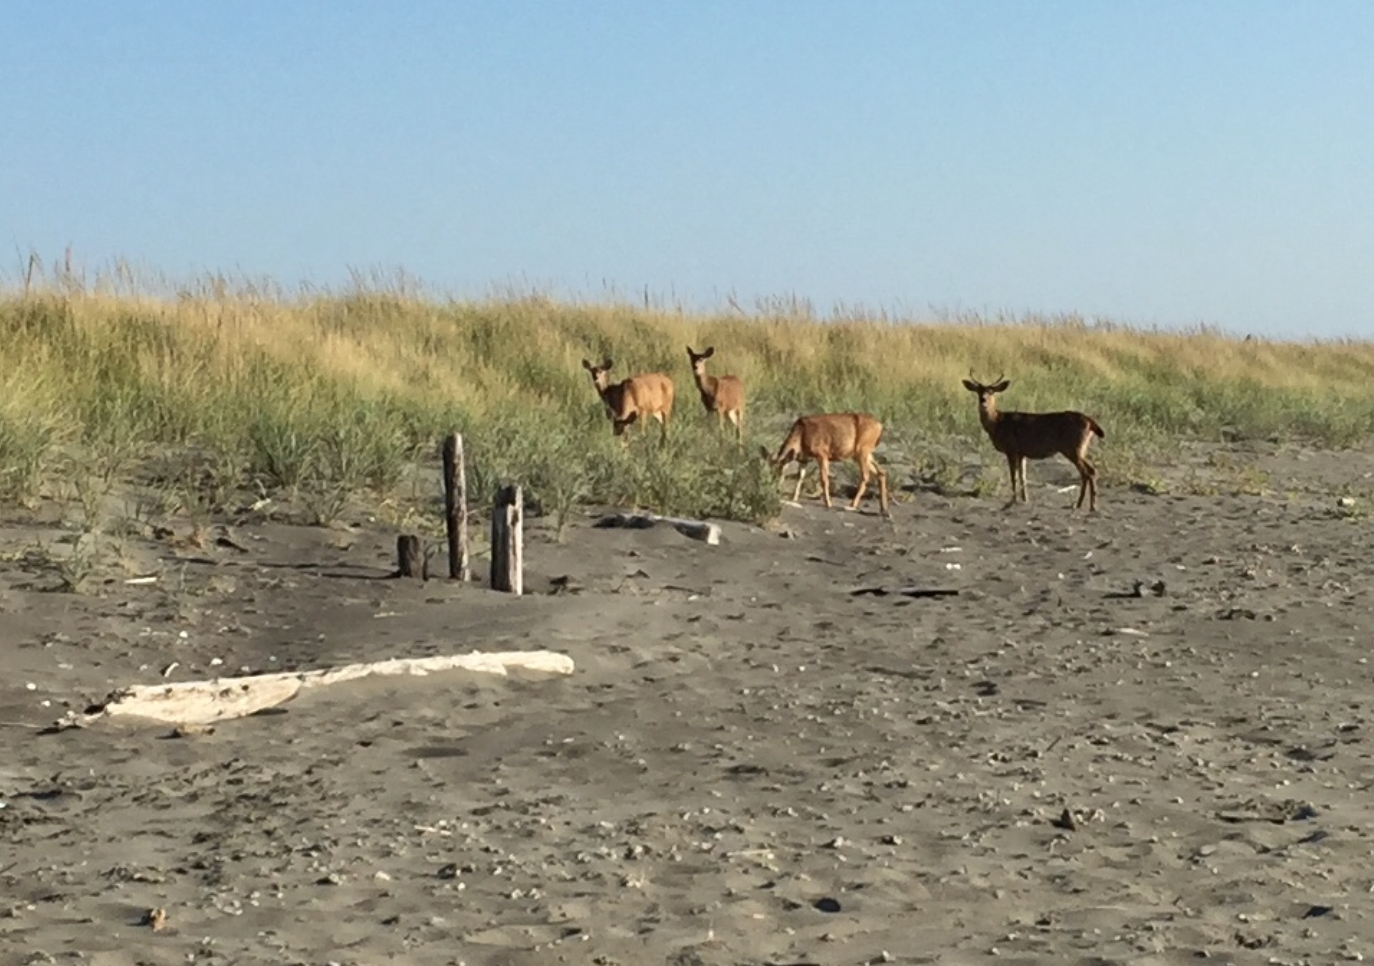 DEER ON THE BEACH AT OS